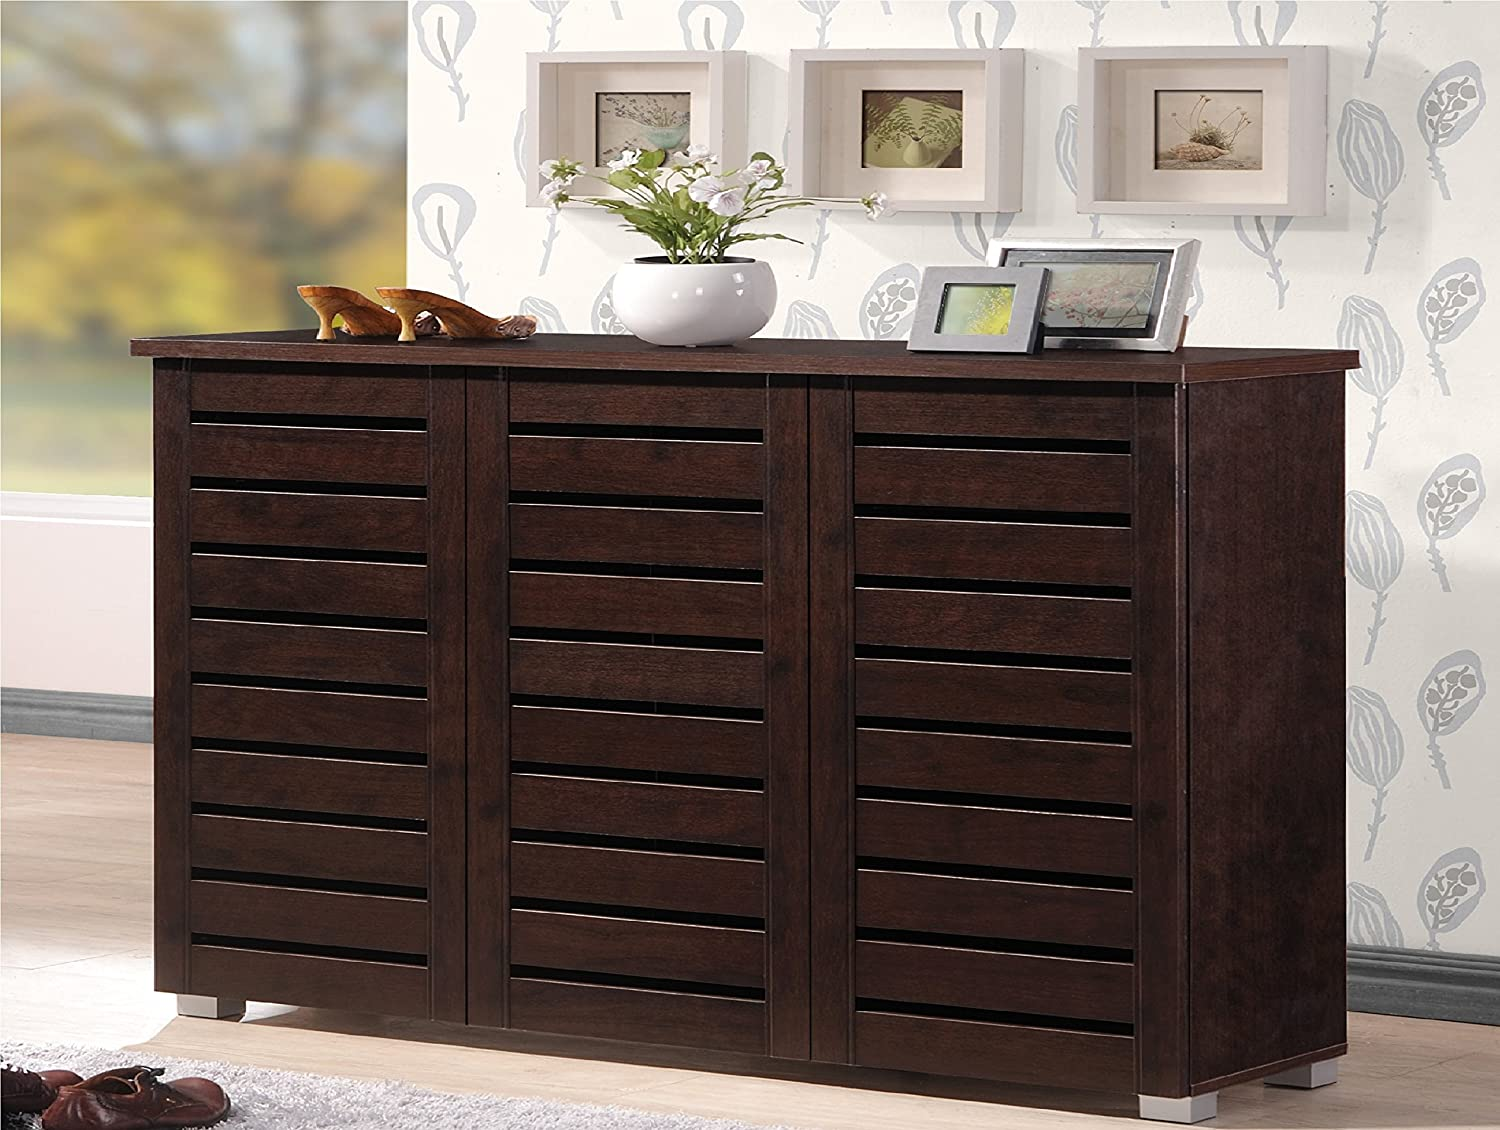 Amazon.com Wholesale Interiors Baxton Studio Adalwin Modern and Contemporary 3-Door Dark Brown Wooden Entryway Shoes Storage Cabinet Kitchen u0026 Dining & Amazon.com: Wholesale Interiors Baxton Studio Adalwin Modern and ...